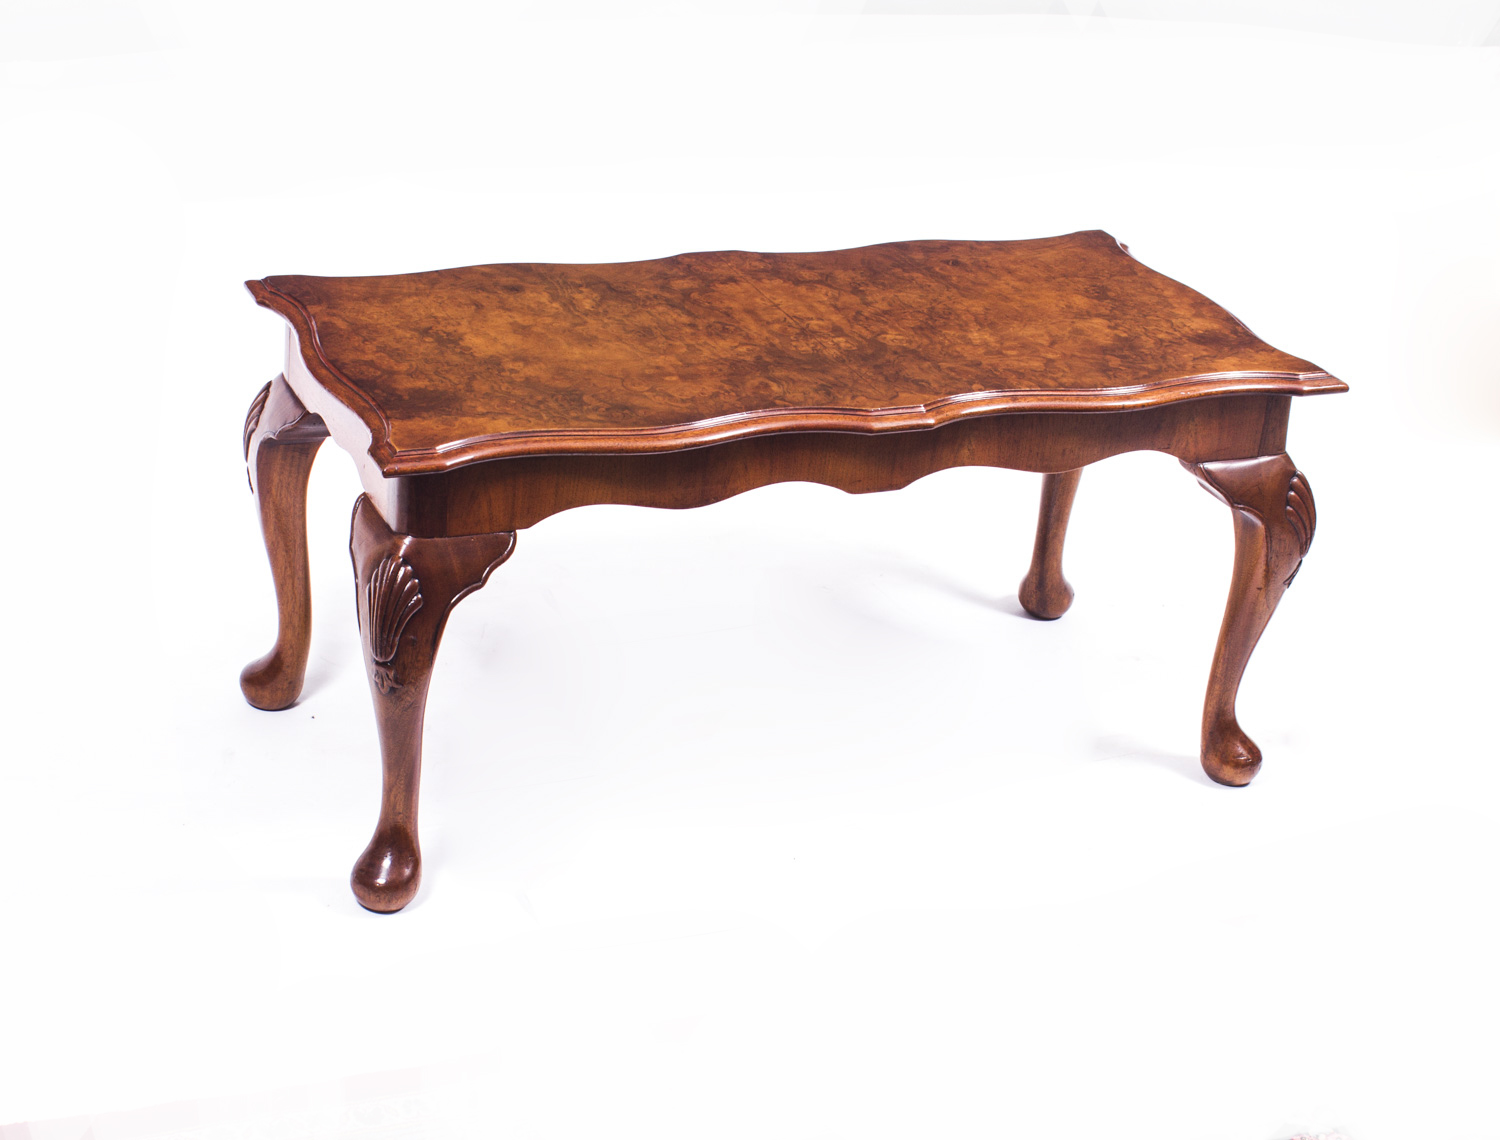 Vintage burr walnut queen anne style coffee table Vogue coffee table